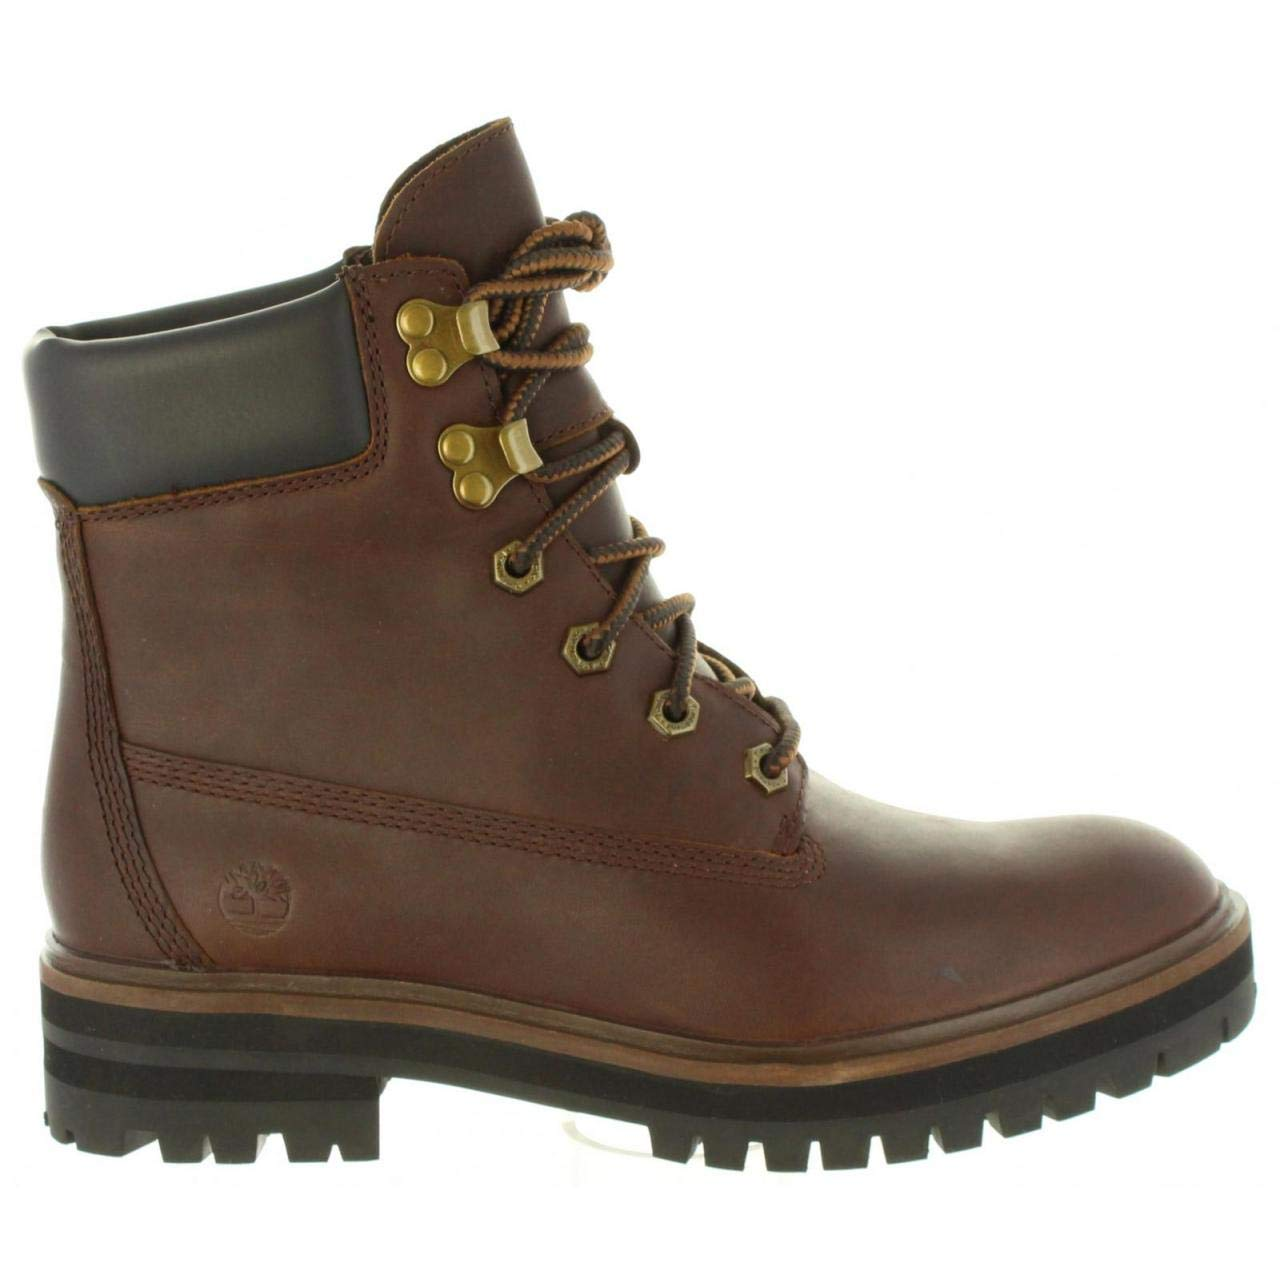 Timberland Bottes pour Femme A1S92 London Dark Brown